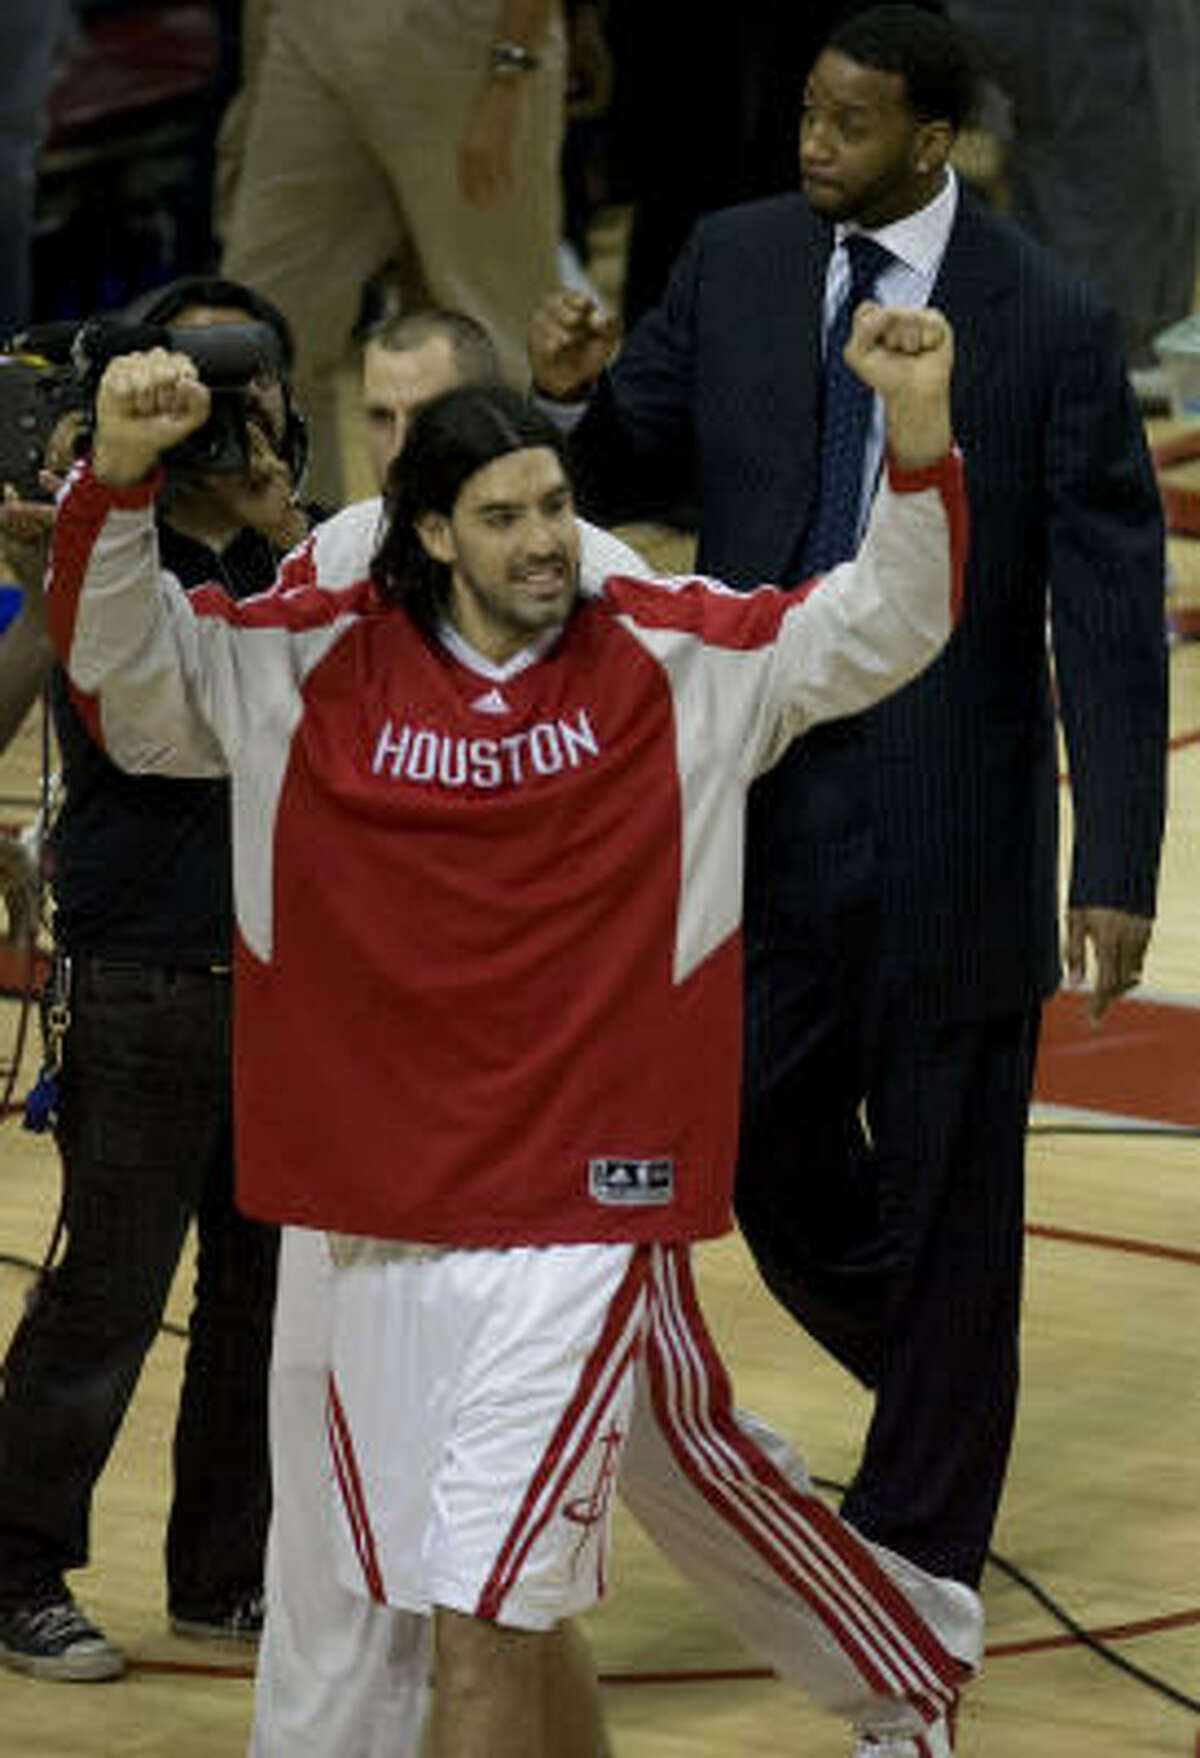 Rockets forward Luis Scola (front) and Tracy McGrady (rear) celebrate after defeating the Portland Trail Blazers during Game 4.